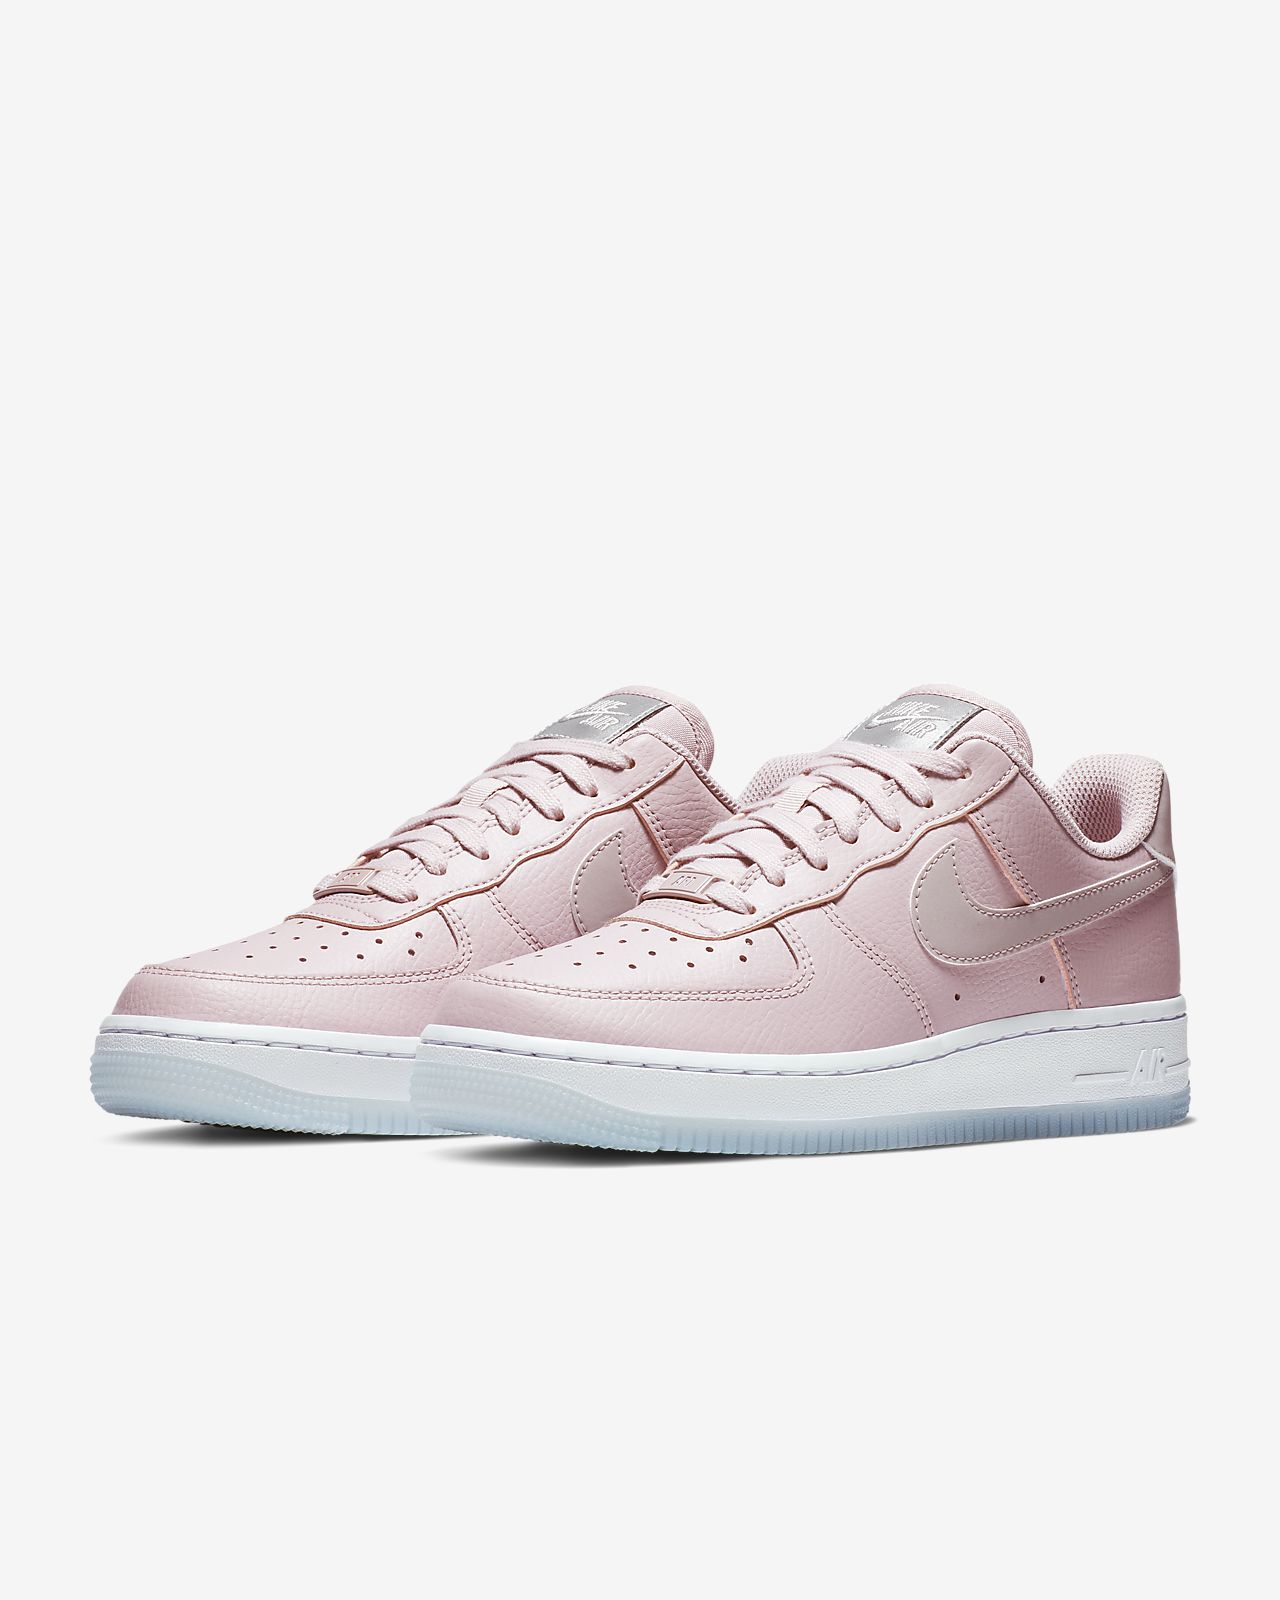 new style 5e295 f38e0 ... Nike Air Force 1  07 Essential Women s Shoe